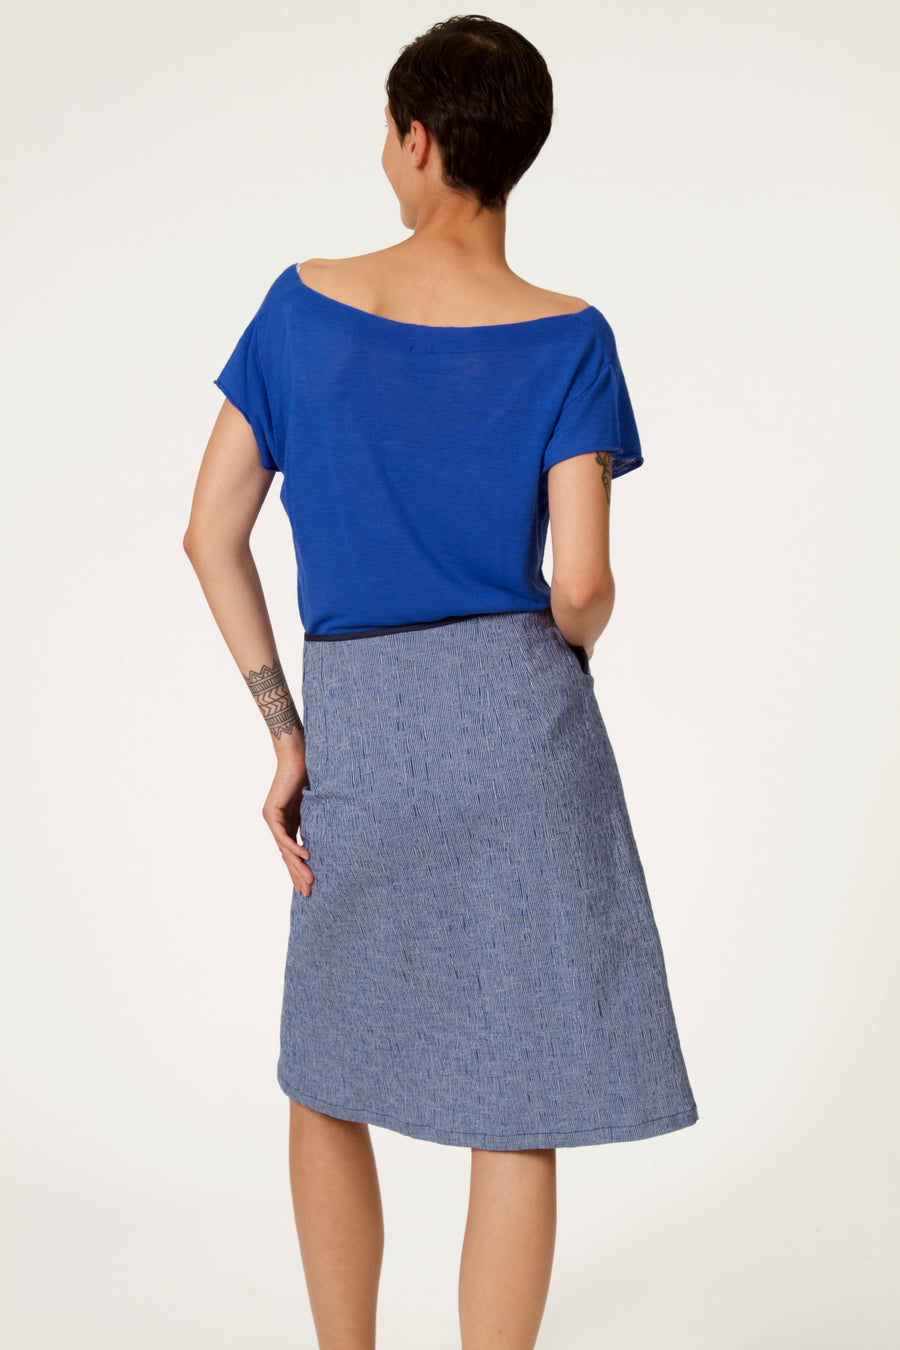 TIBRE Blue Skirt